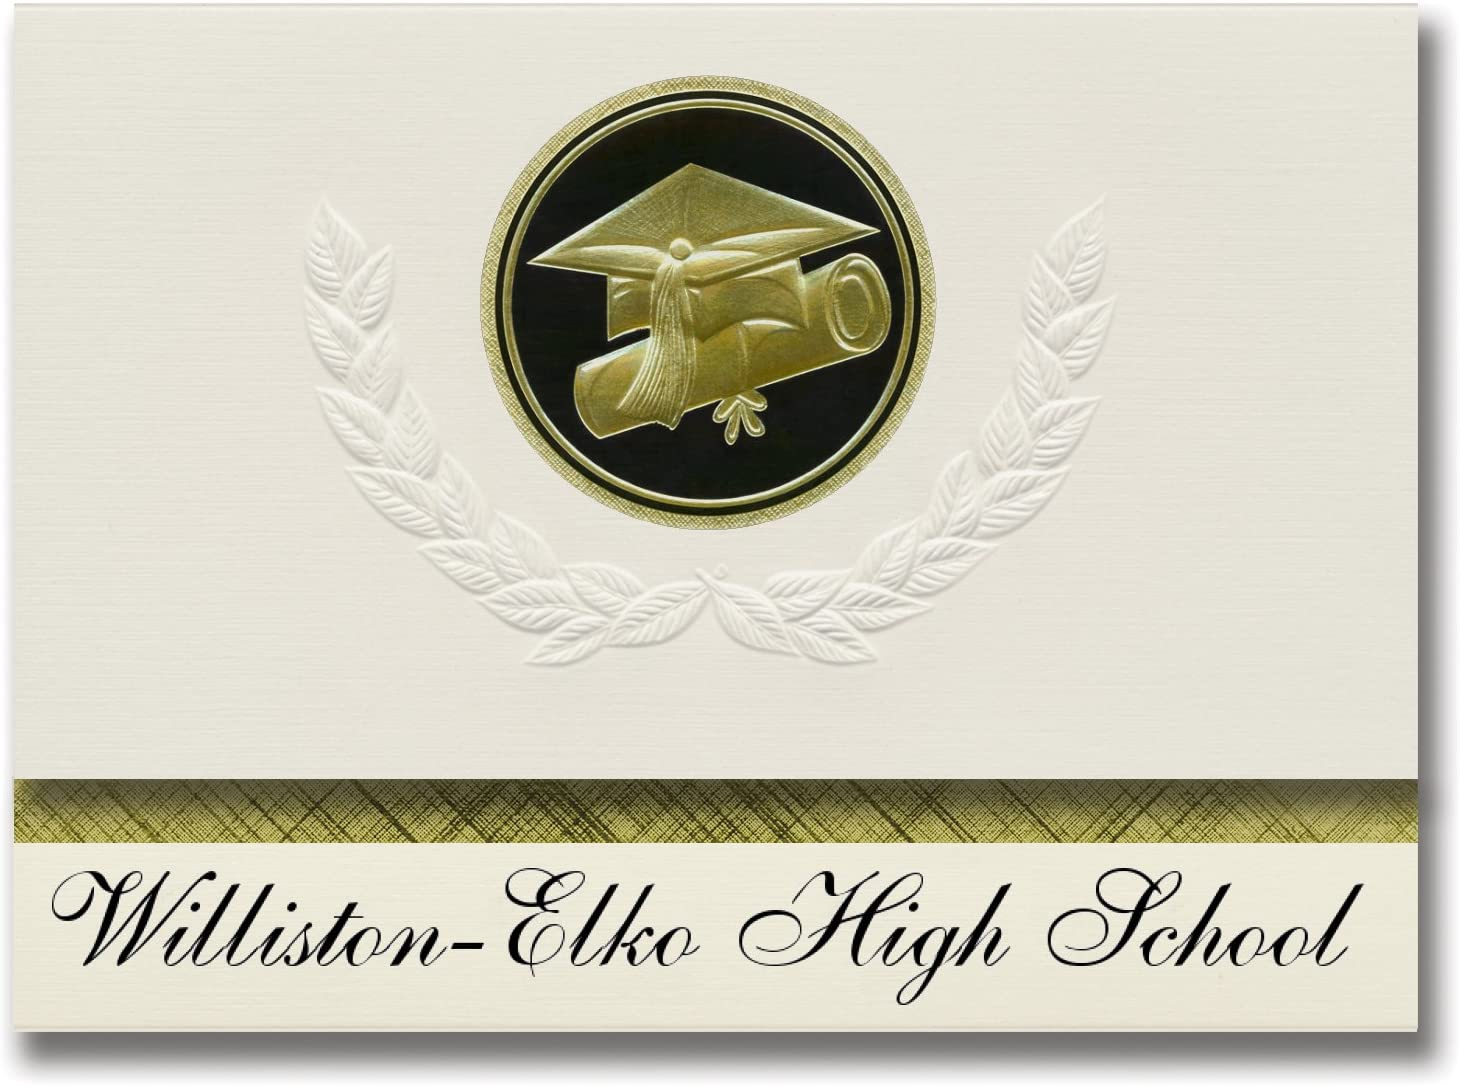 Signature Announcements Williston-Elko High School (Williston, SC) Graduation Announcements, Presidential style, Elite package of 25 Cap & Diploma Seal Black & Gold